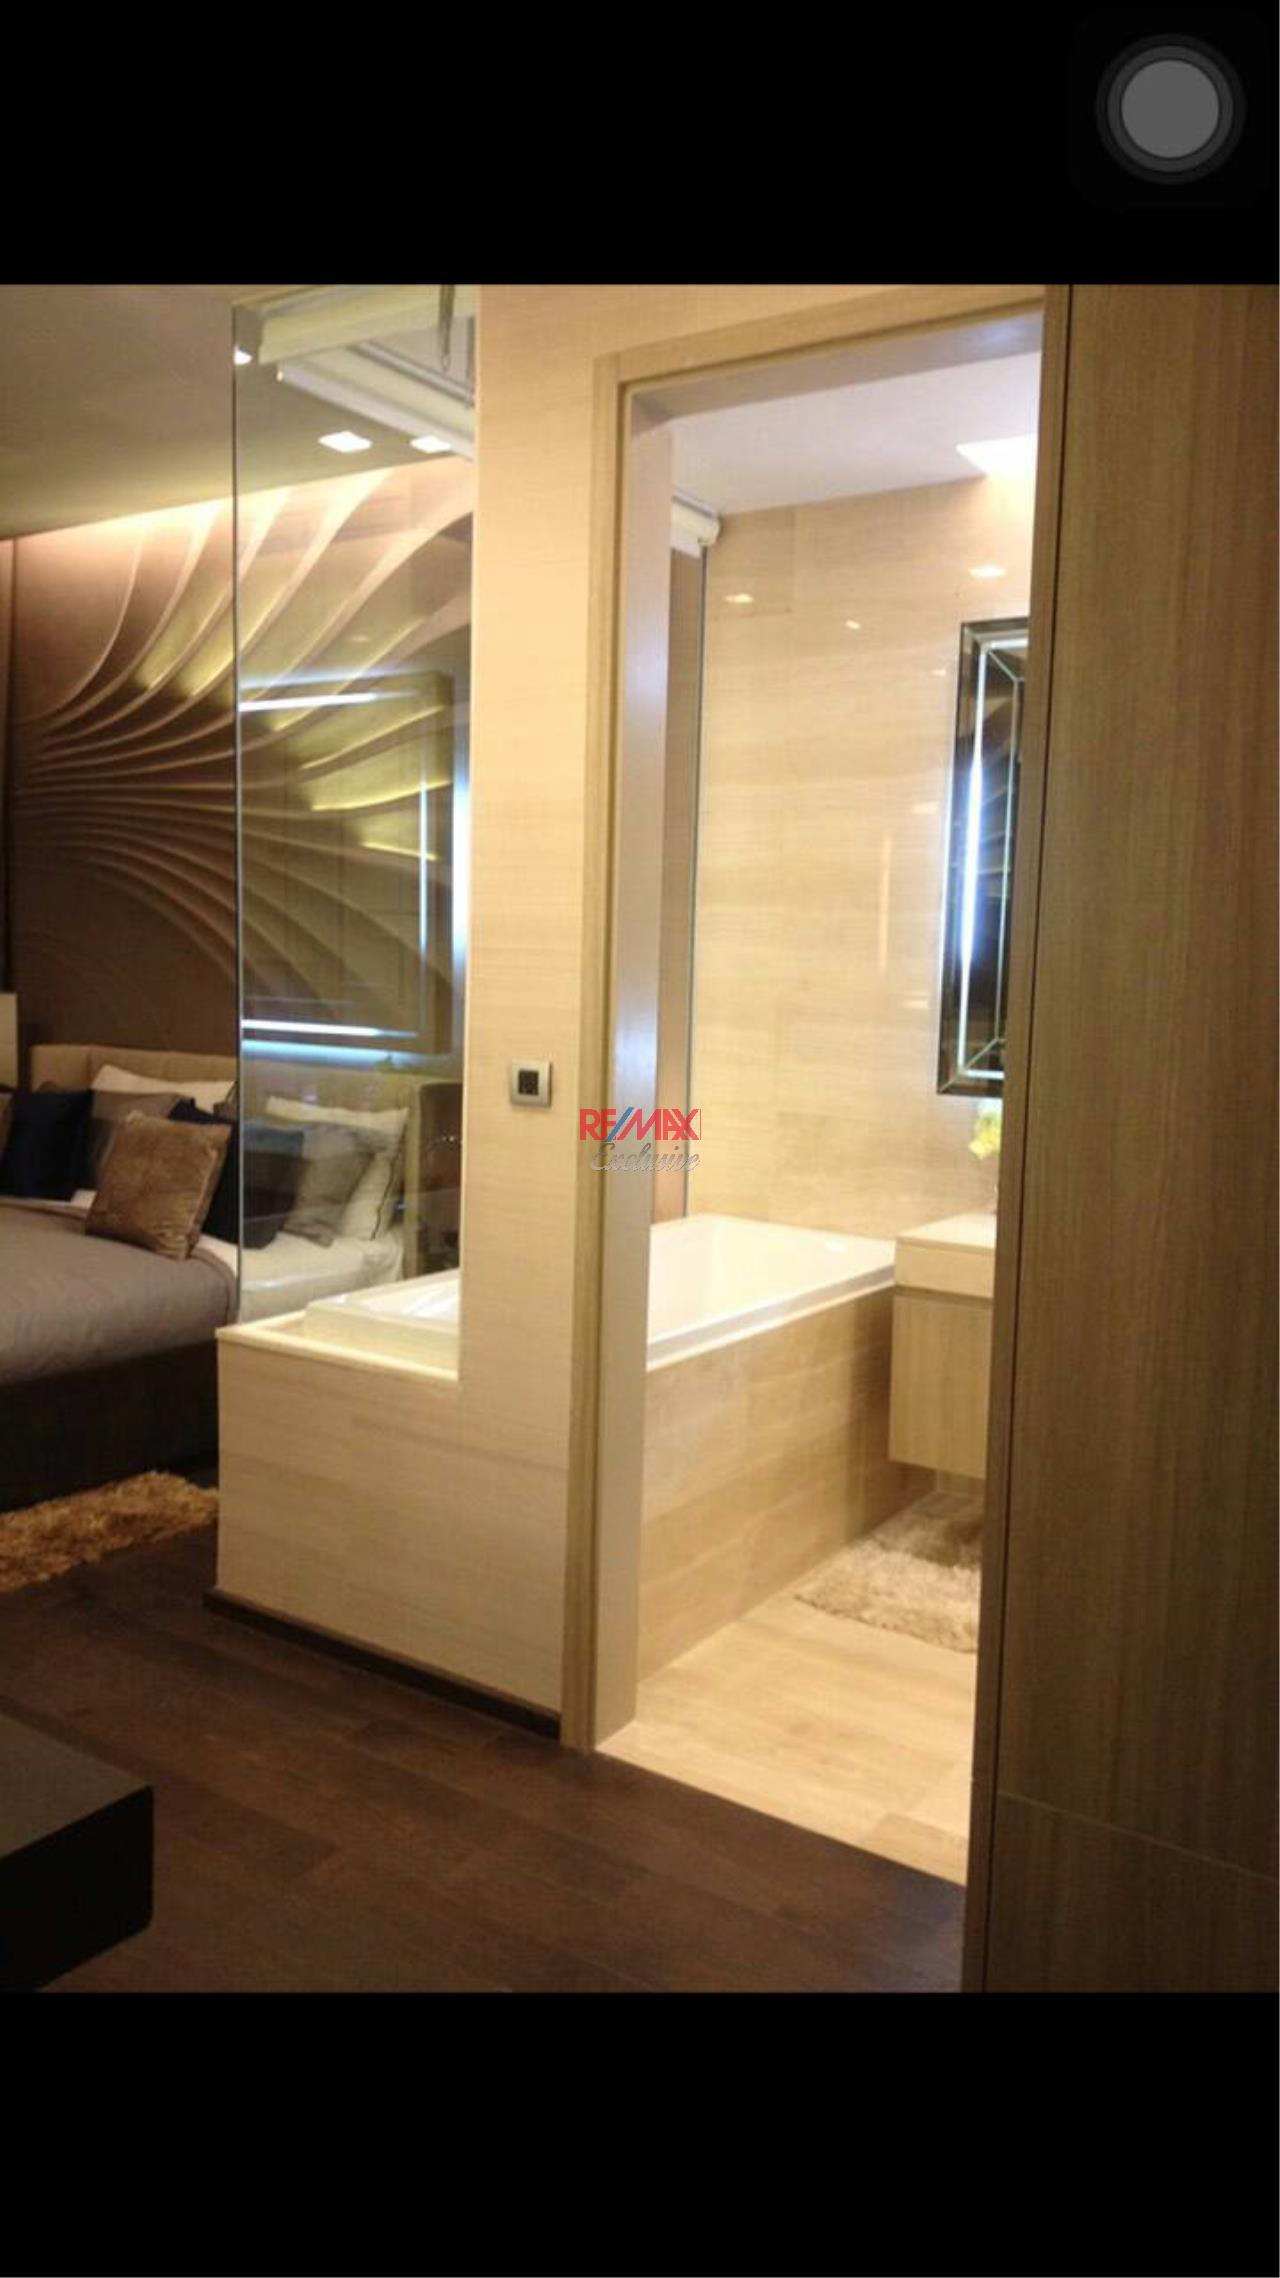 RE/MAX Exclusive Agency's The XXXIX By Sansiri 1 Bedroom For Sale with Tenant 15,200,000 THB!! 4